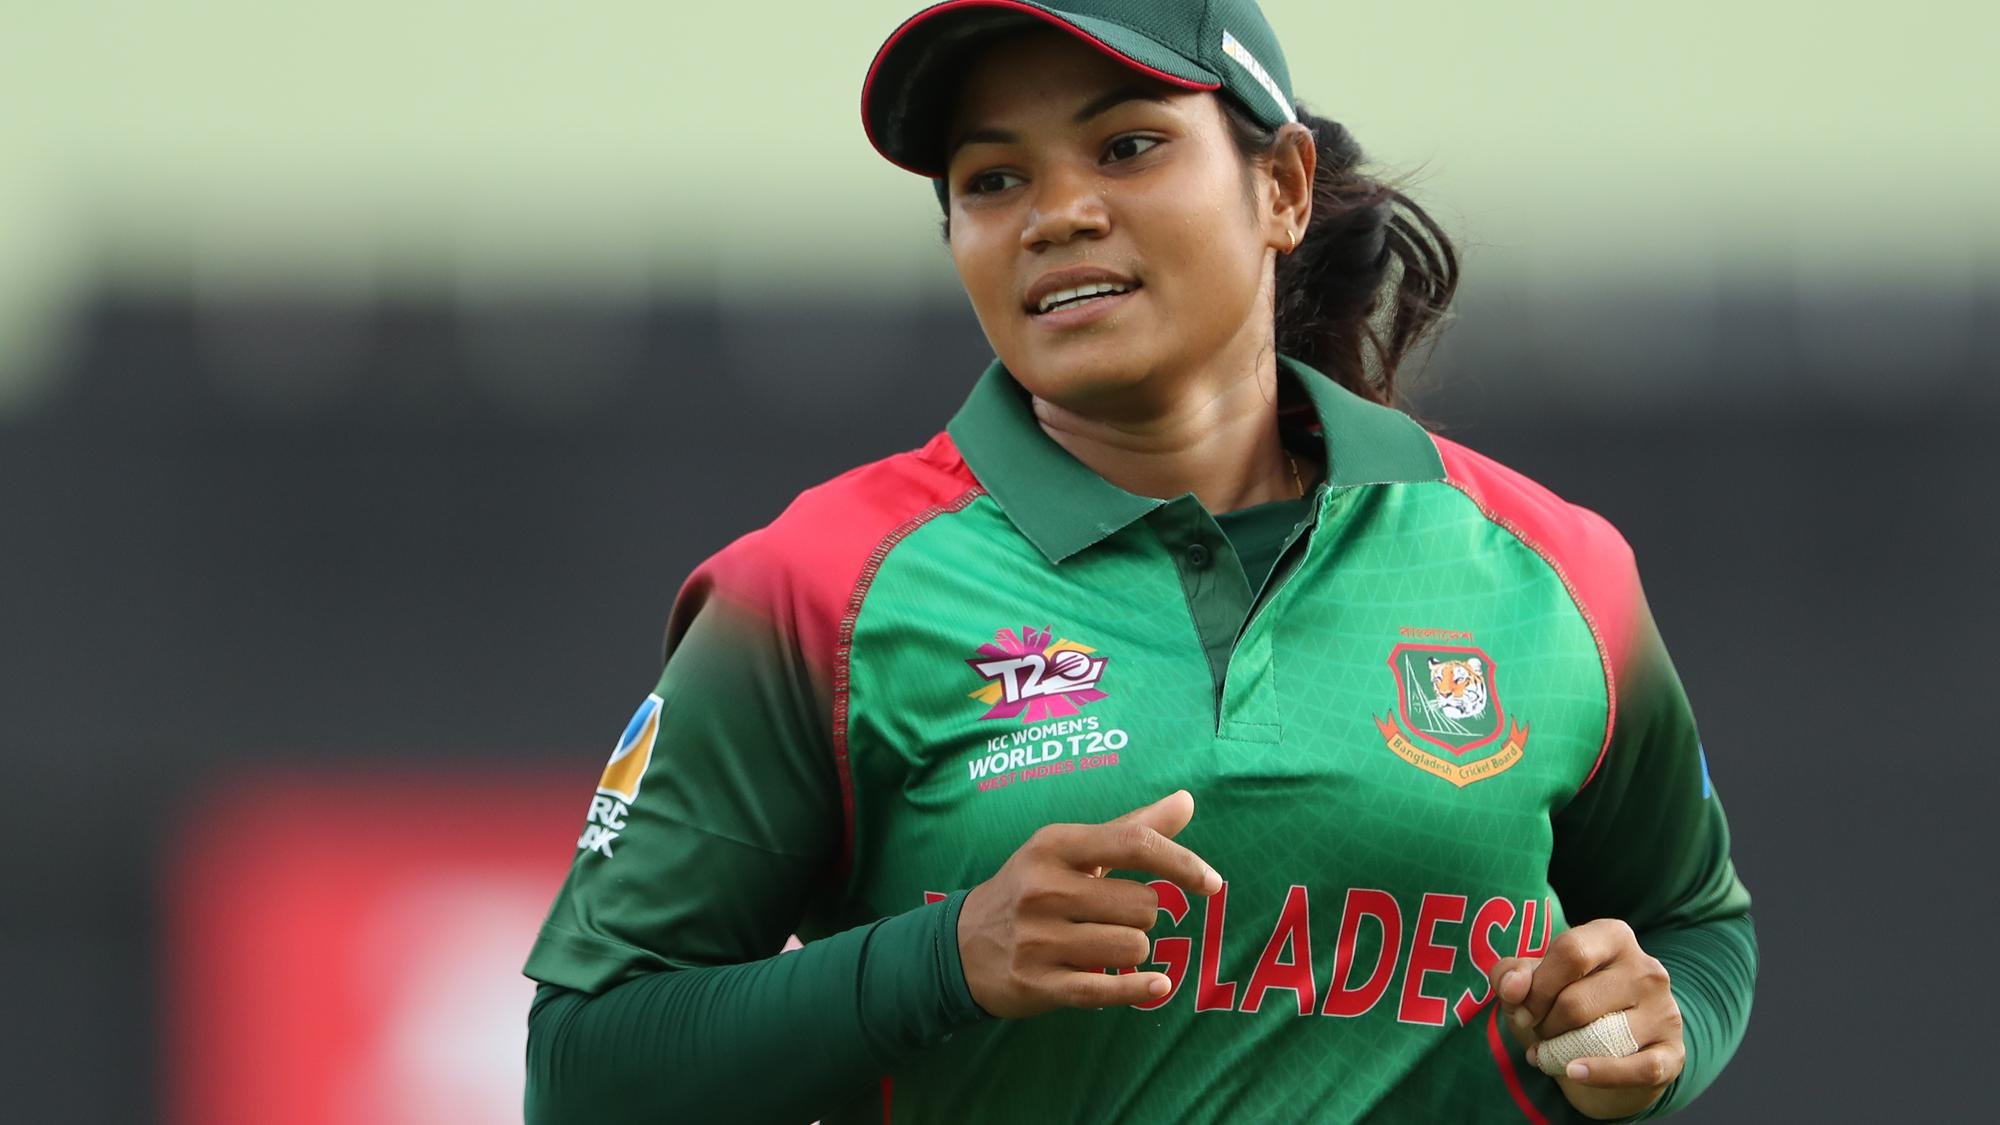 Sanjida Islam of Bangladesh during the ICC Women's World T20 warm up match between Bangladesh and Ireland on November 4, 2018 at the Guyana National Stadium in Providence, Guyana.